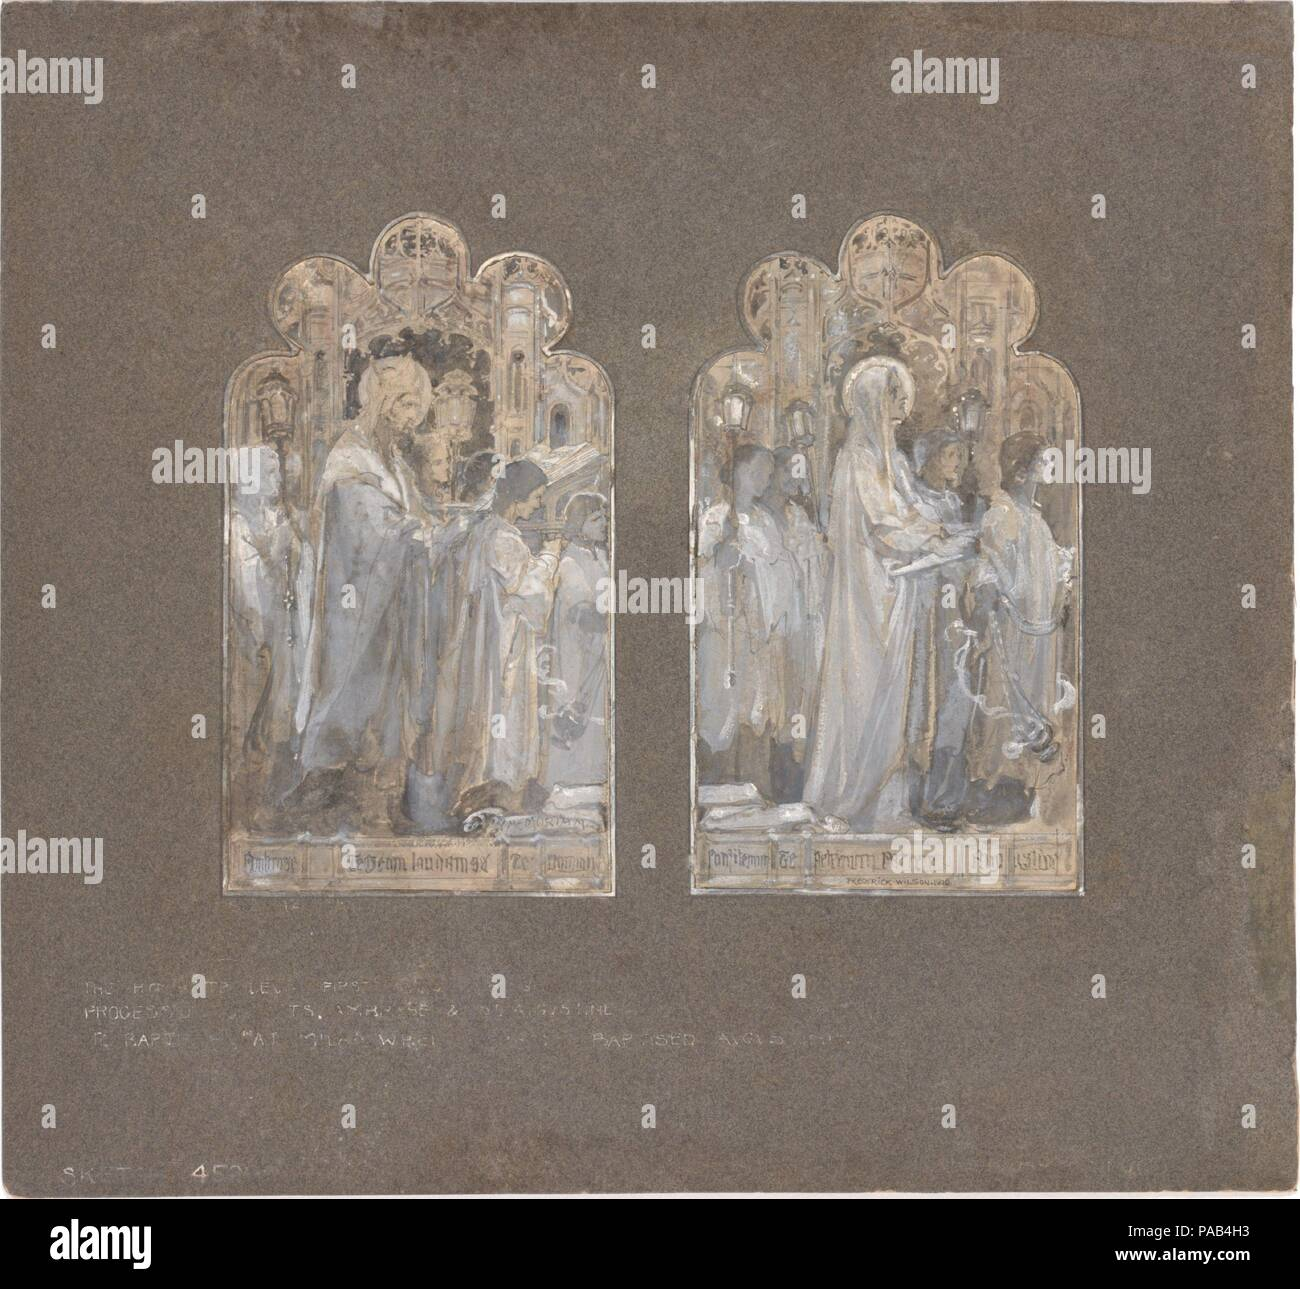 Te Deum Stock Photos & Te Deum Stock Images - Alamy